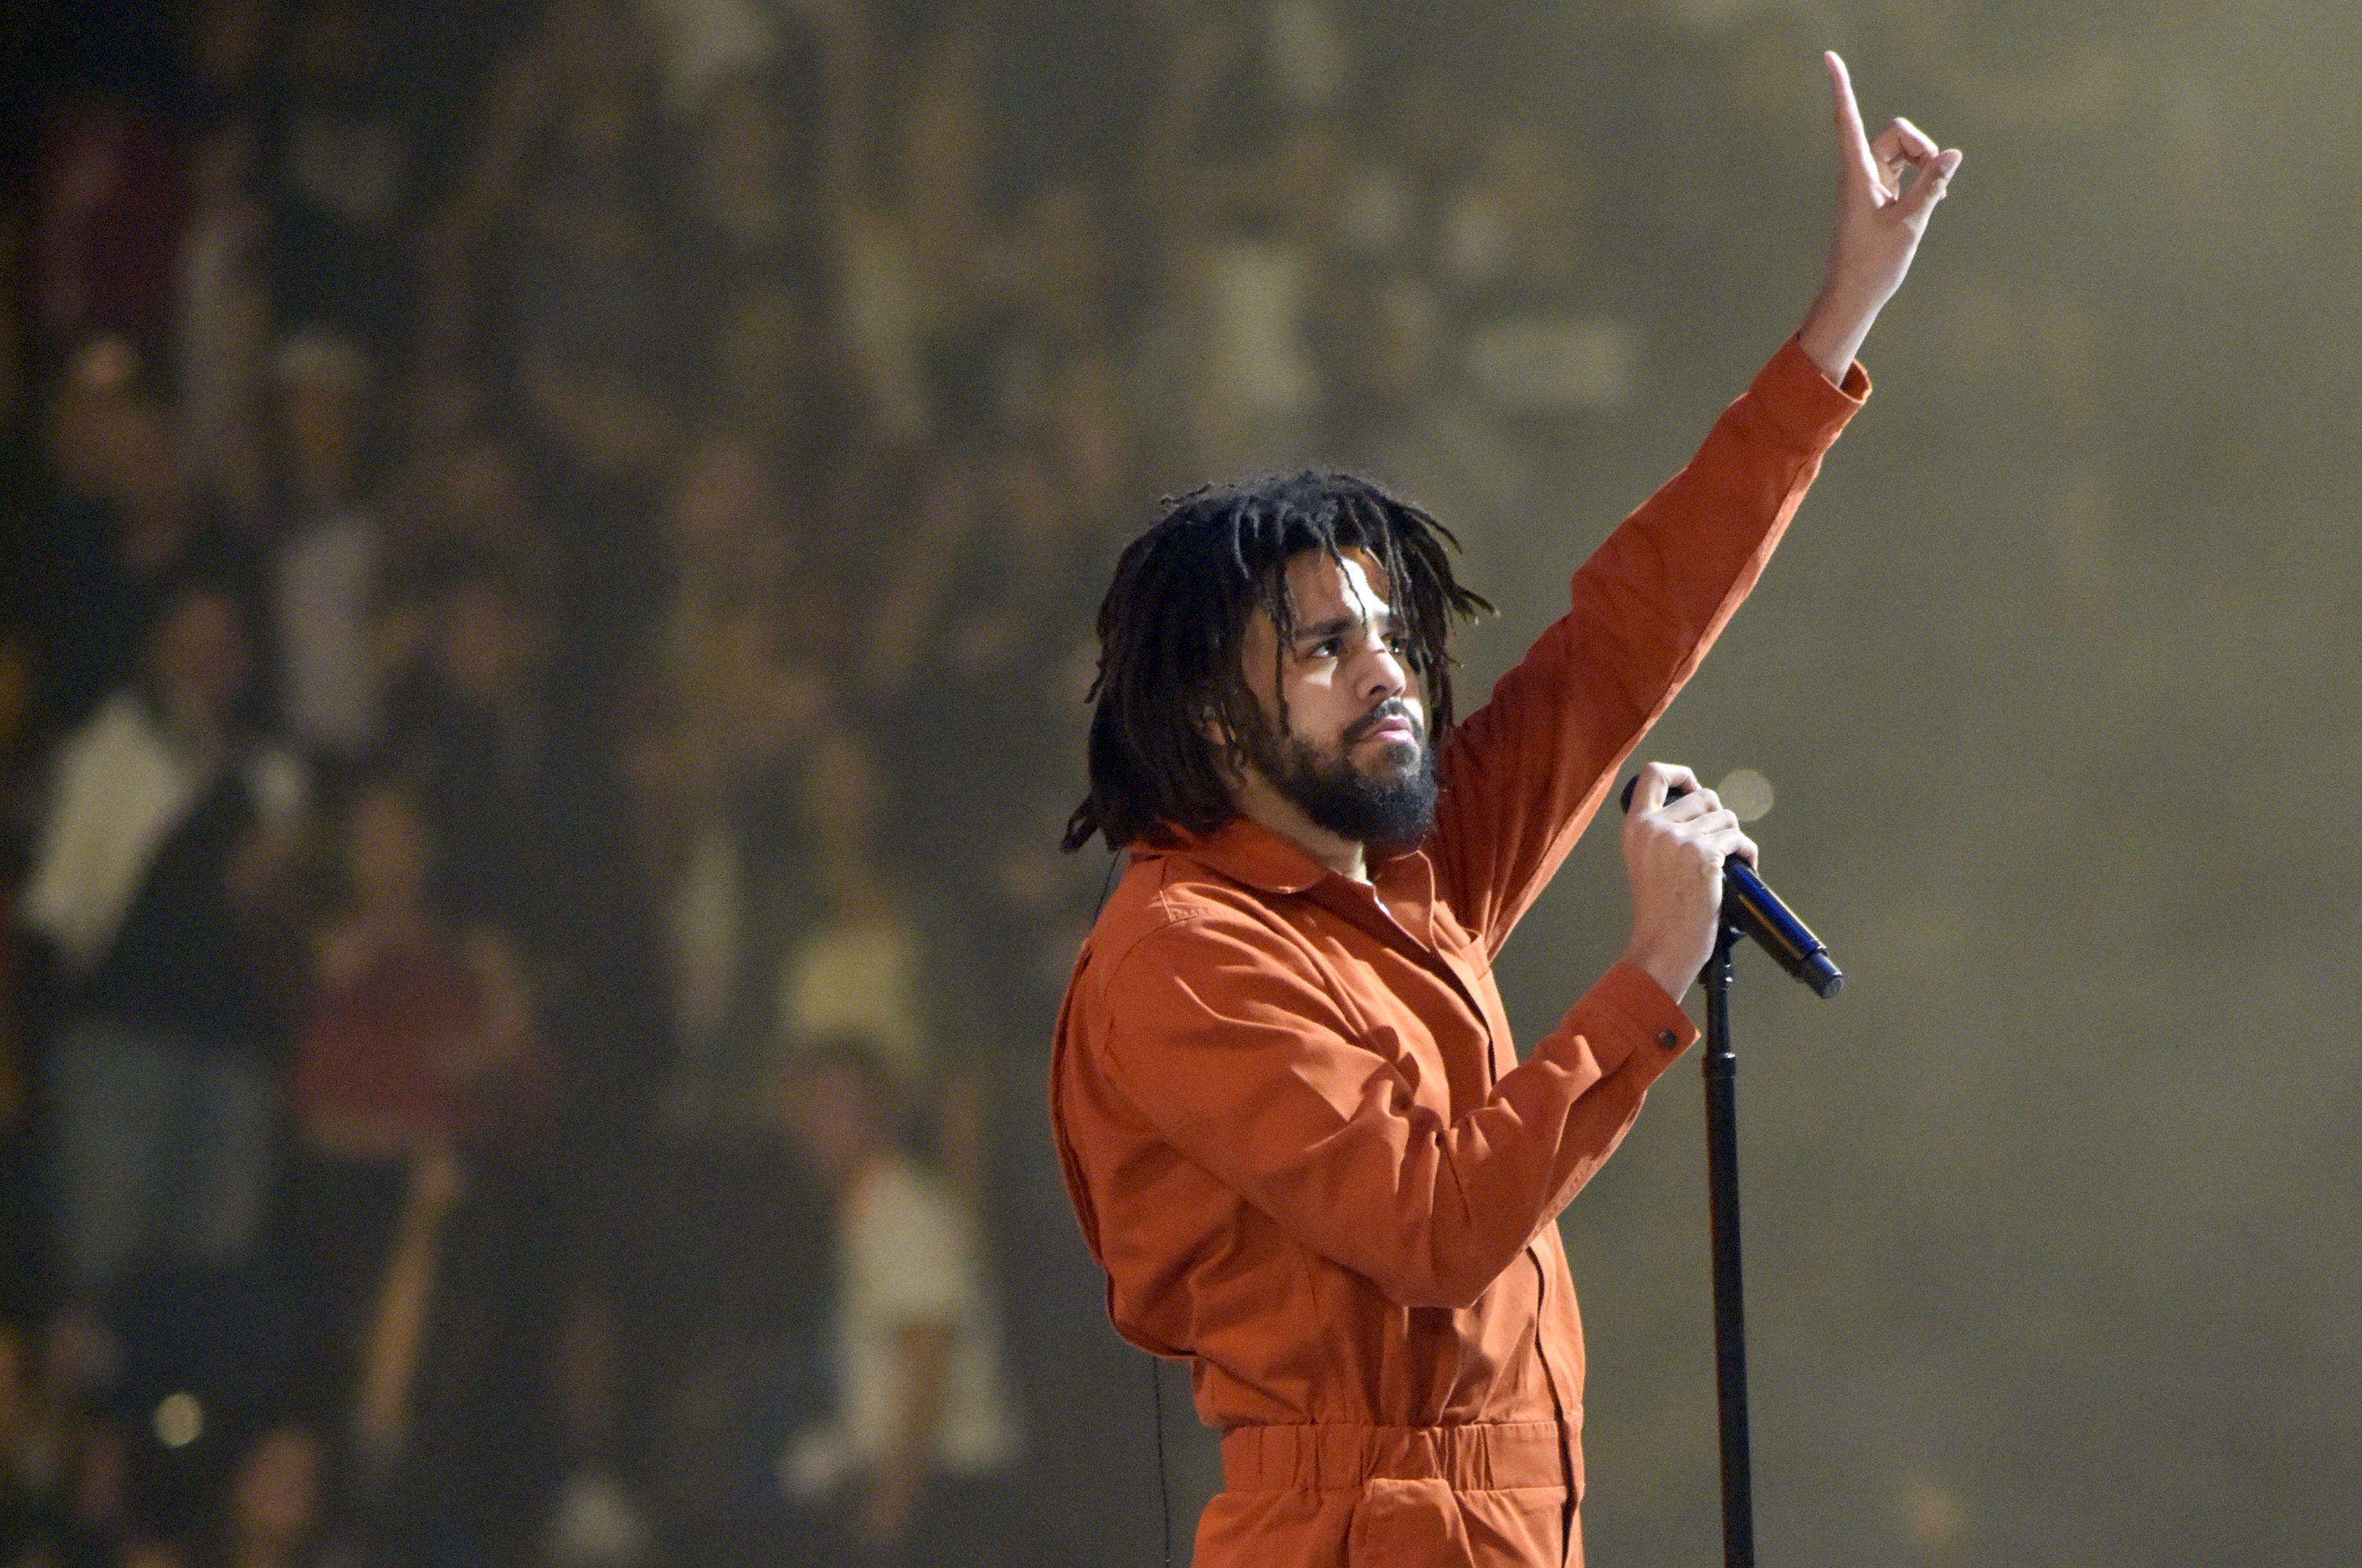 J. Cole Performs At Oracle Arena